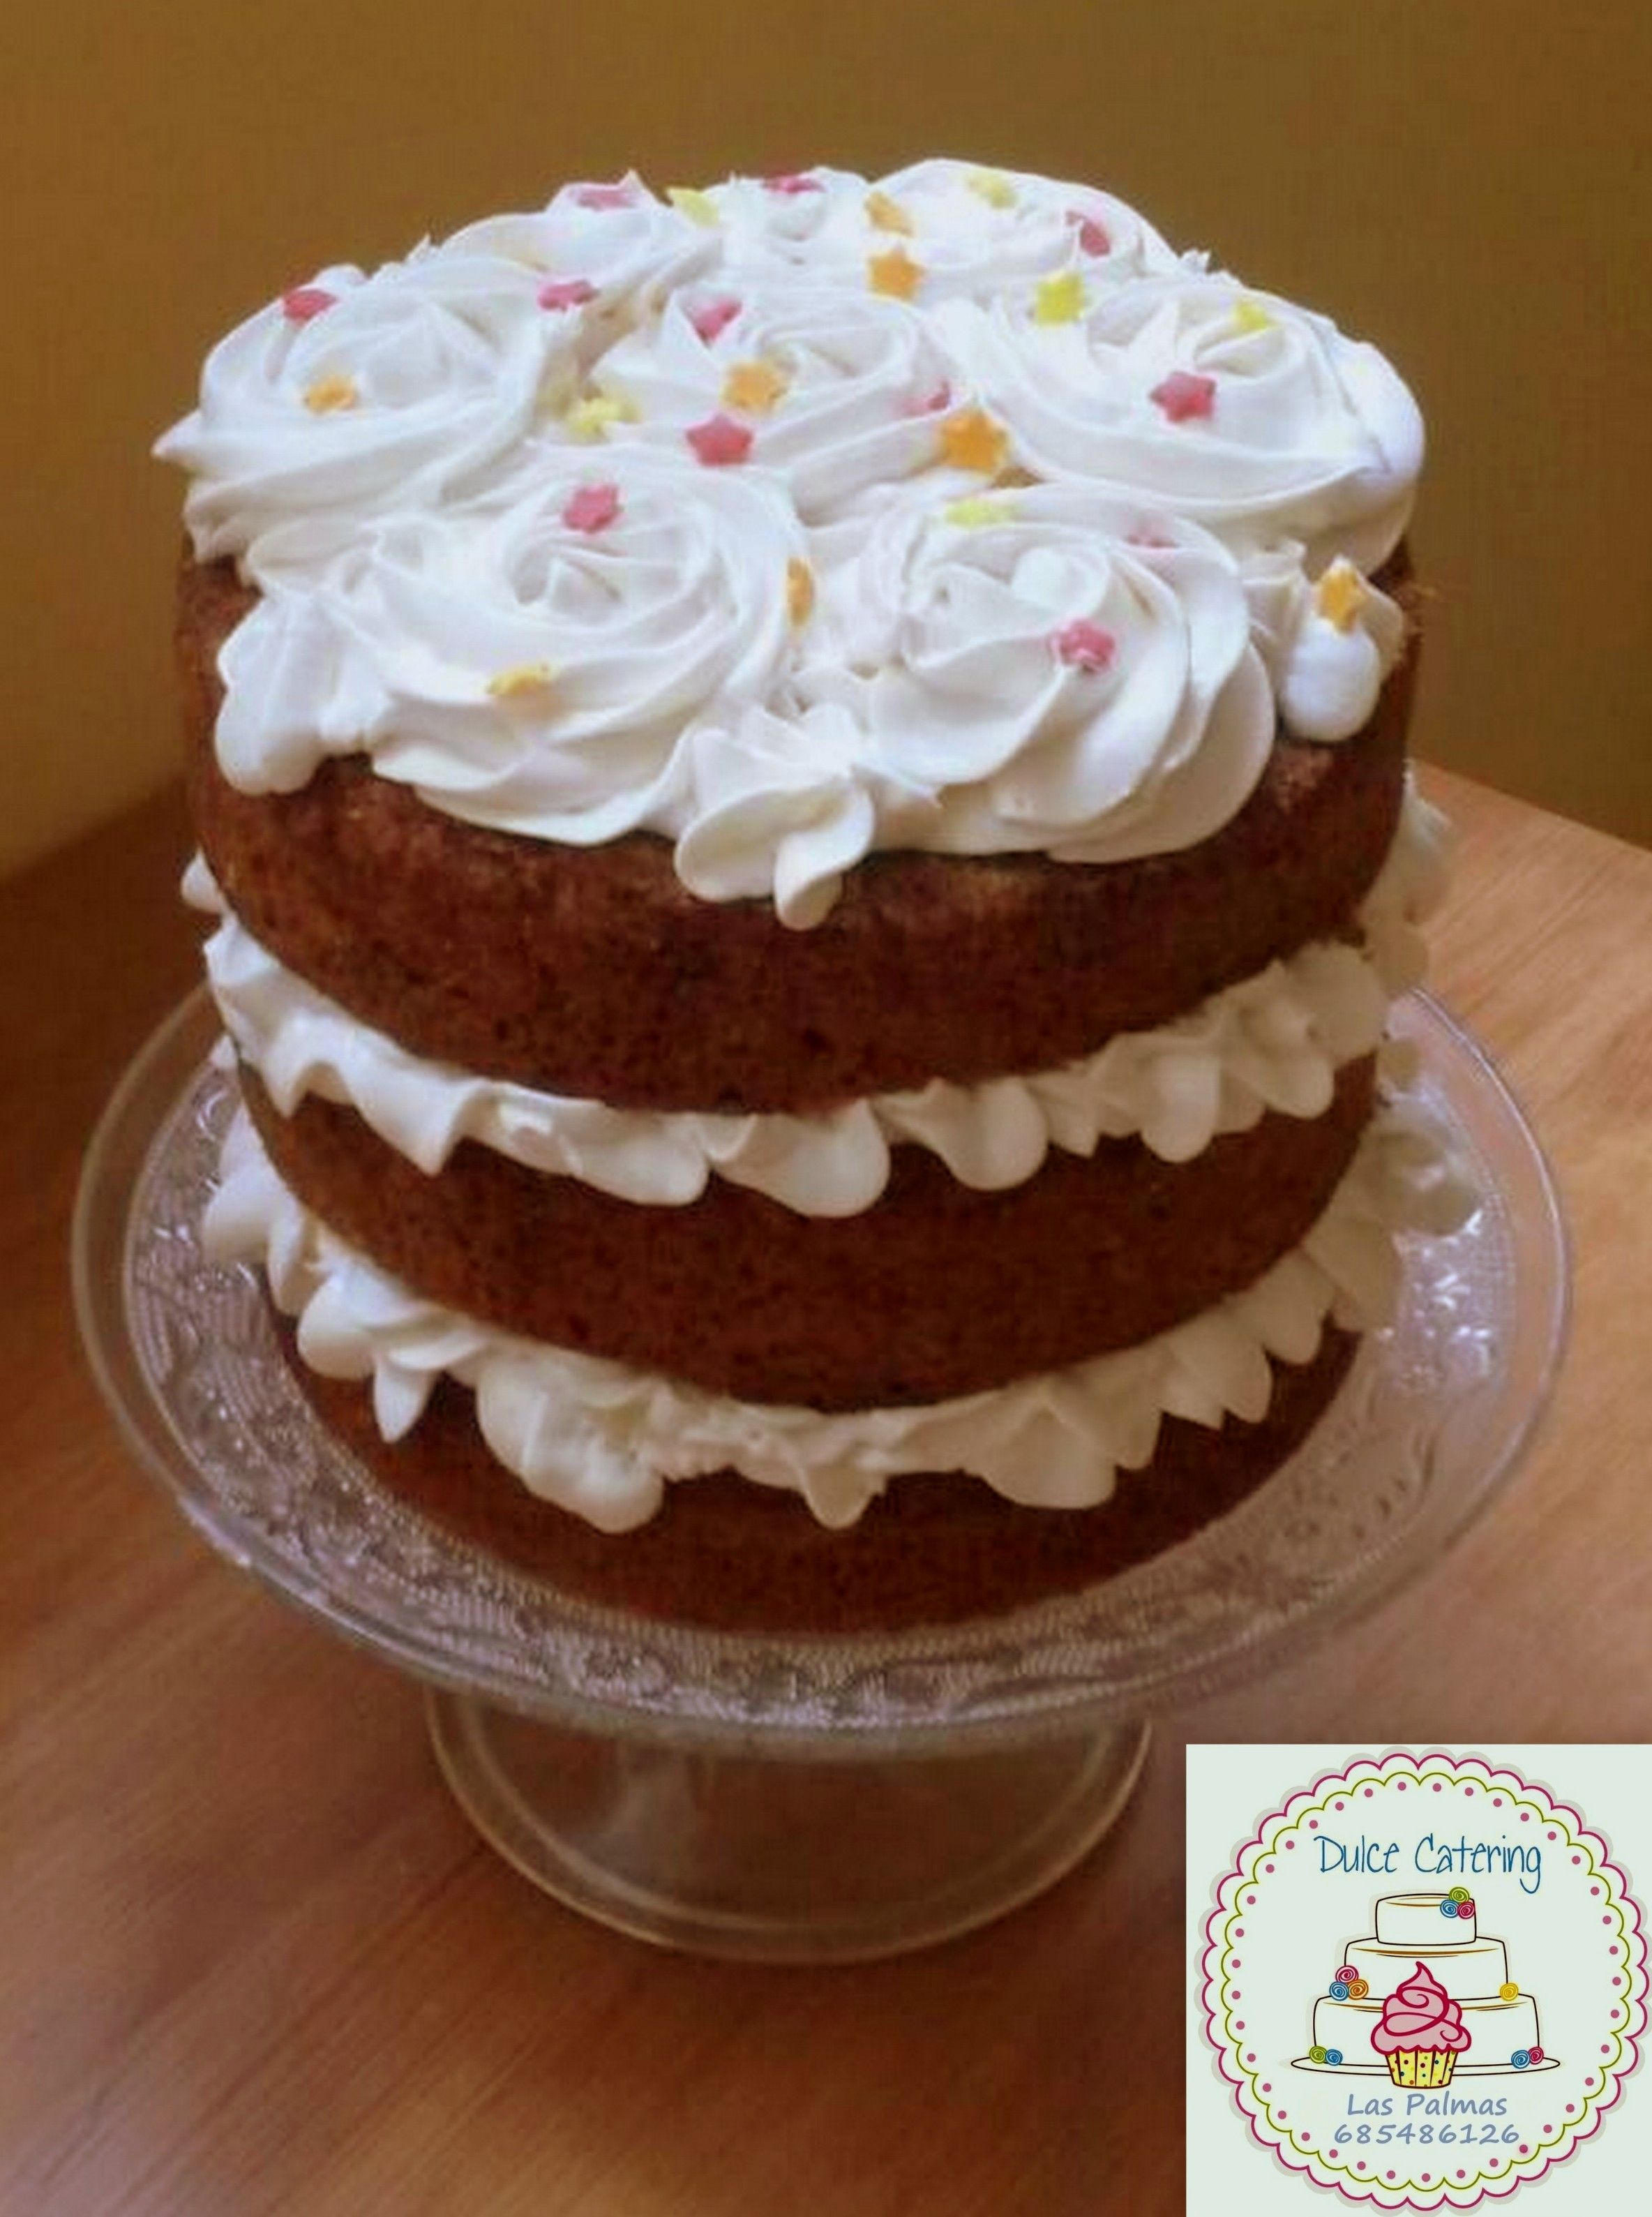 Carrot Cake https://www.facebook.com/Dulcecatering.mesasdulces?ref=hl